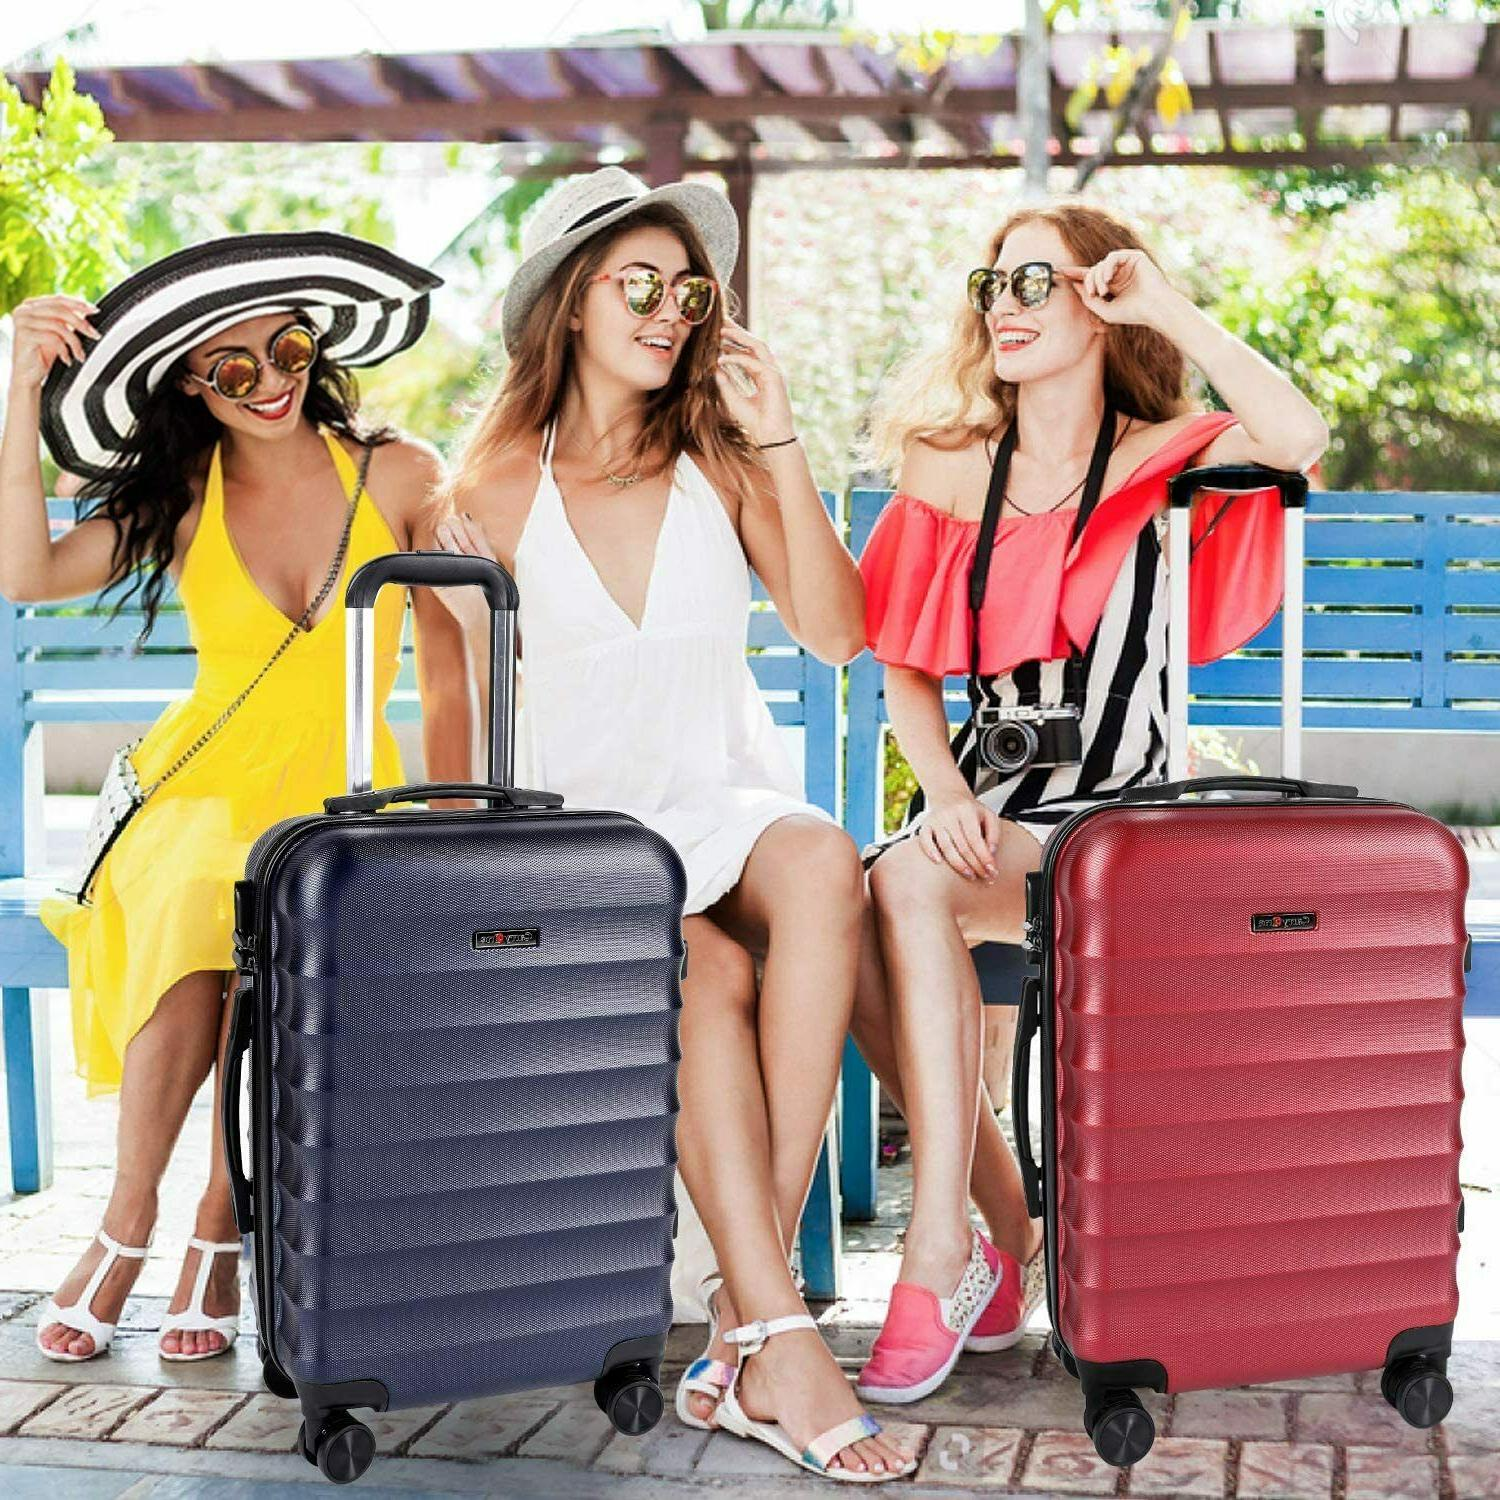 CarryOne Carry Luggage, Suitcase Spinner Wheels,